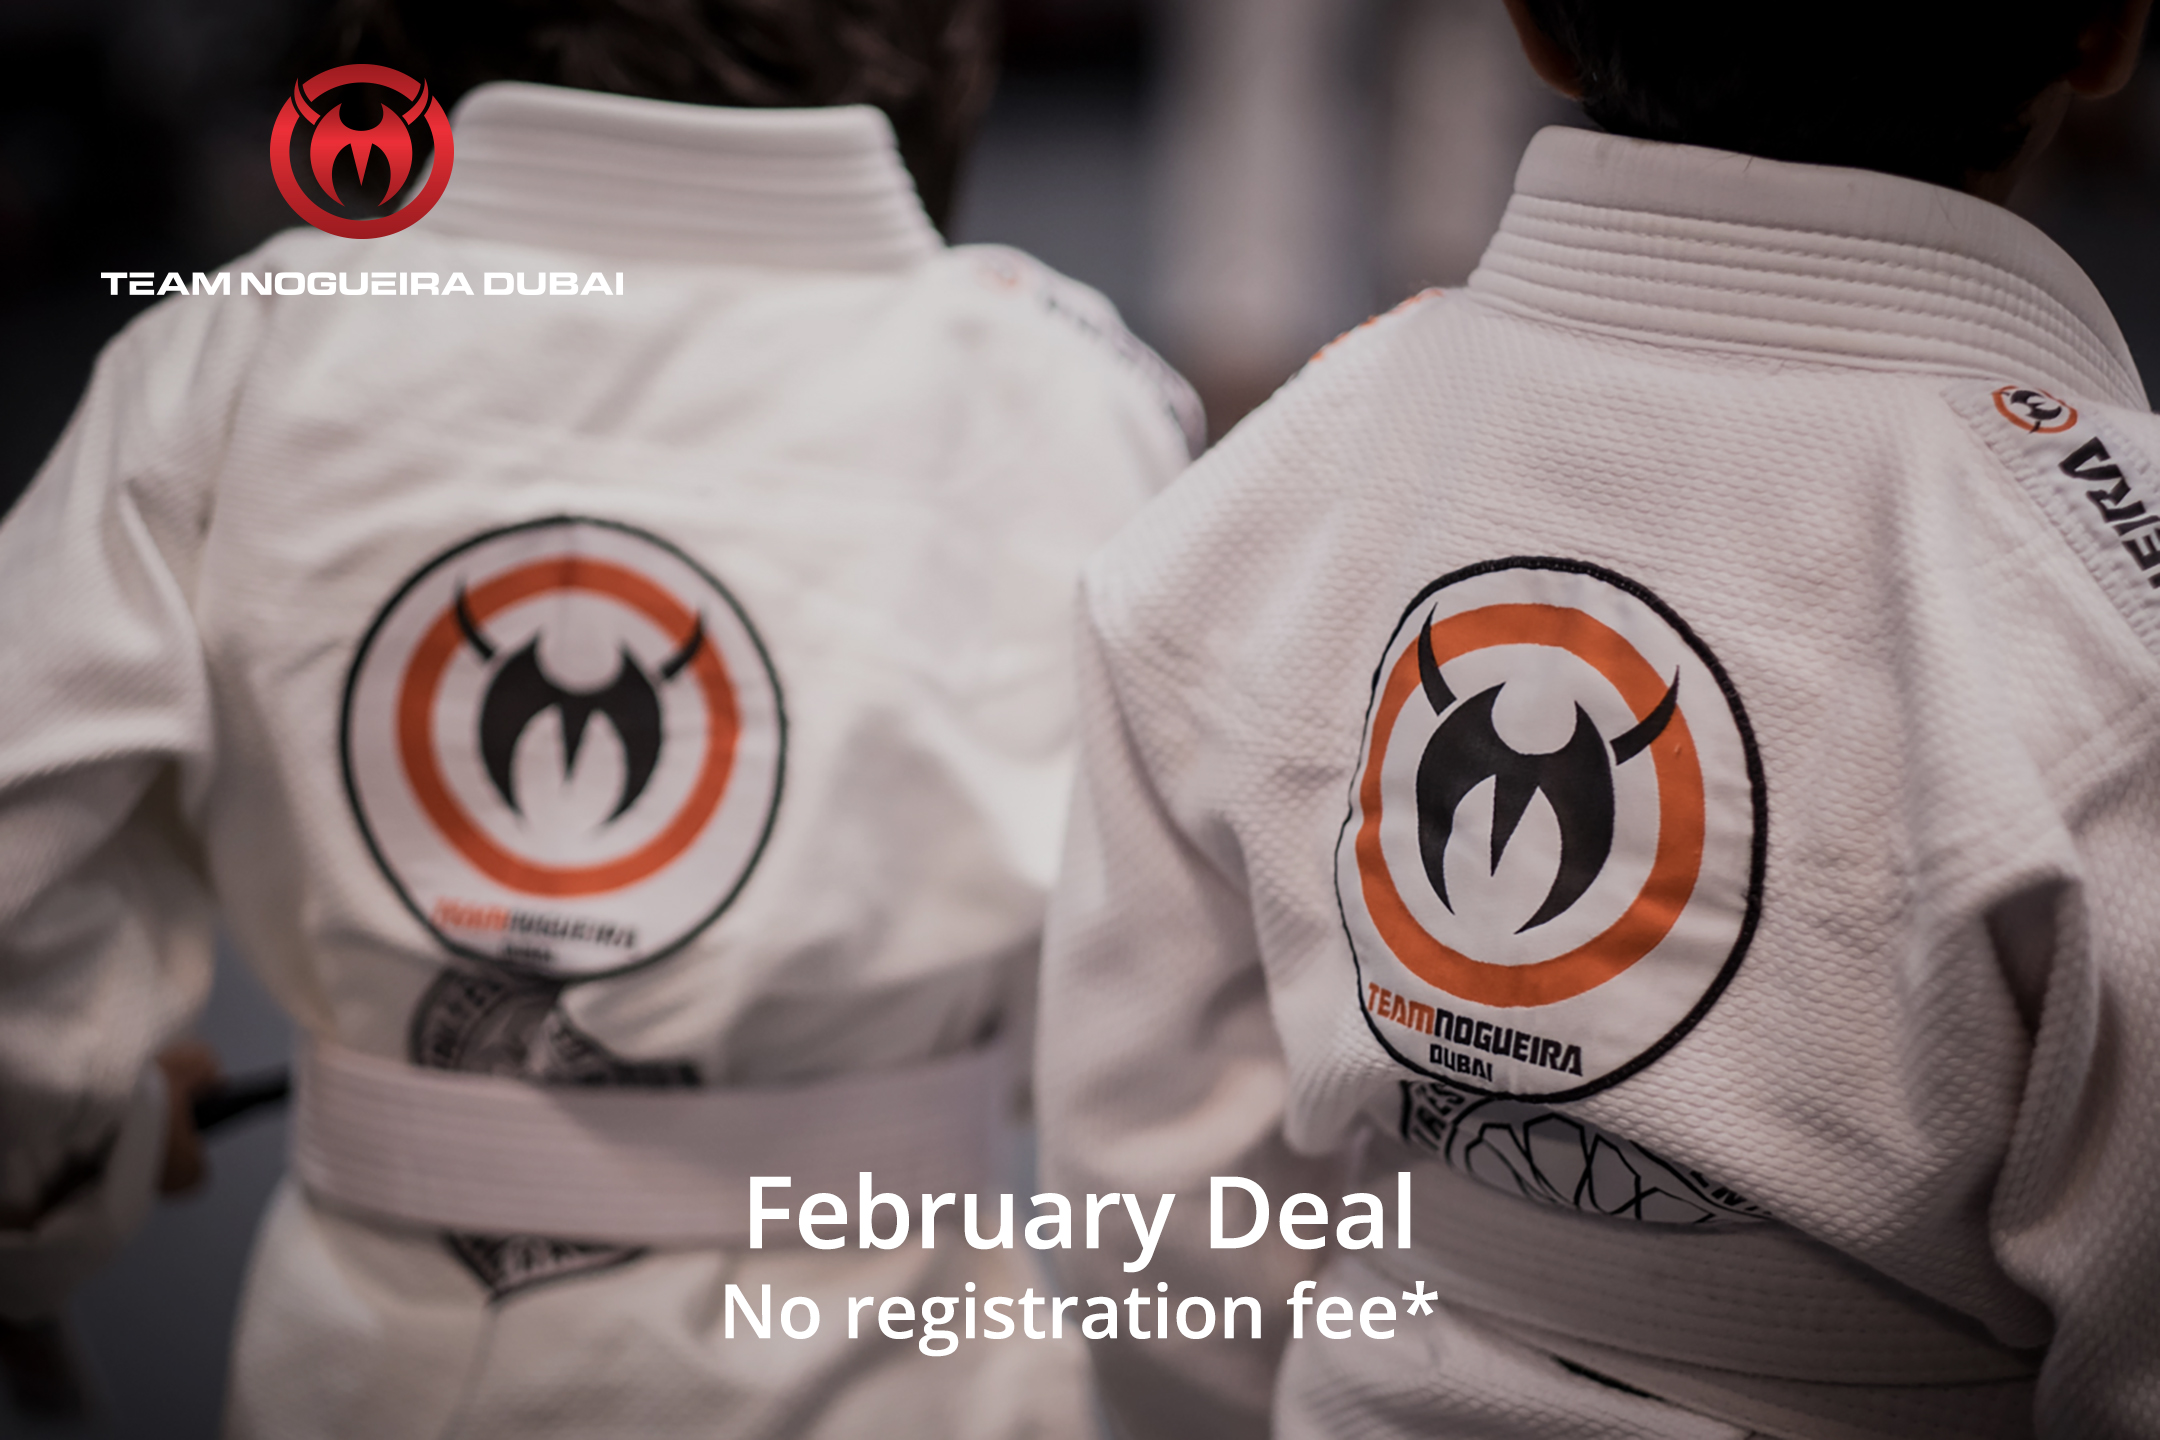 Get fit February deal!